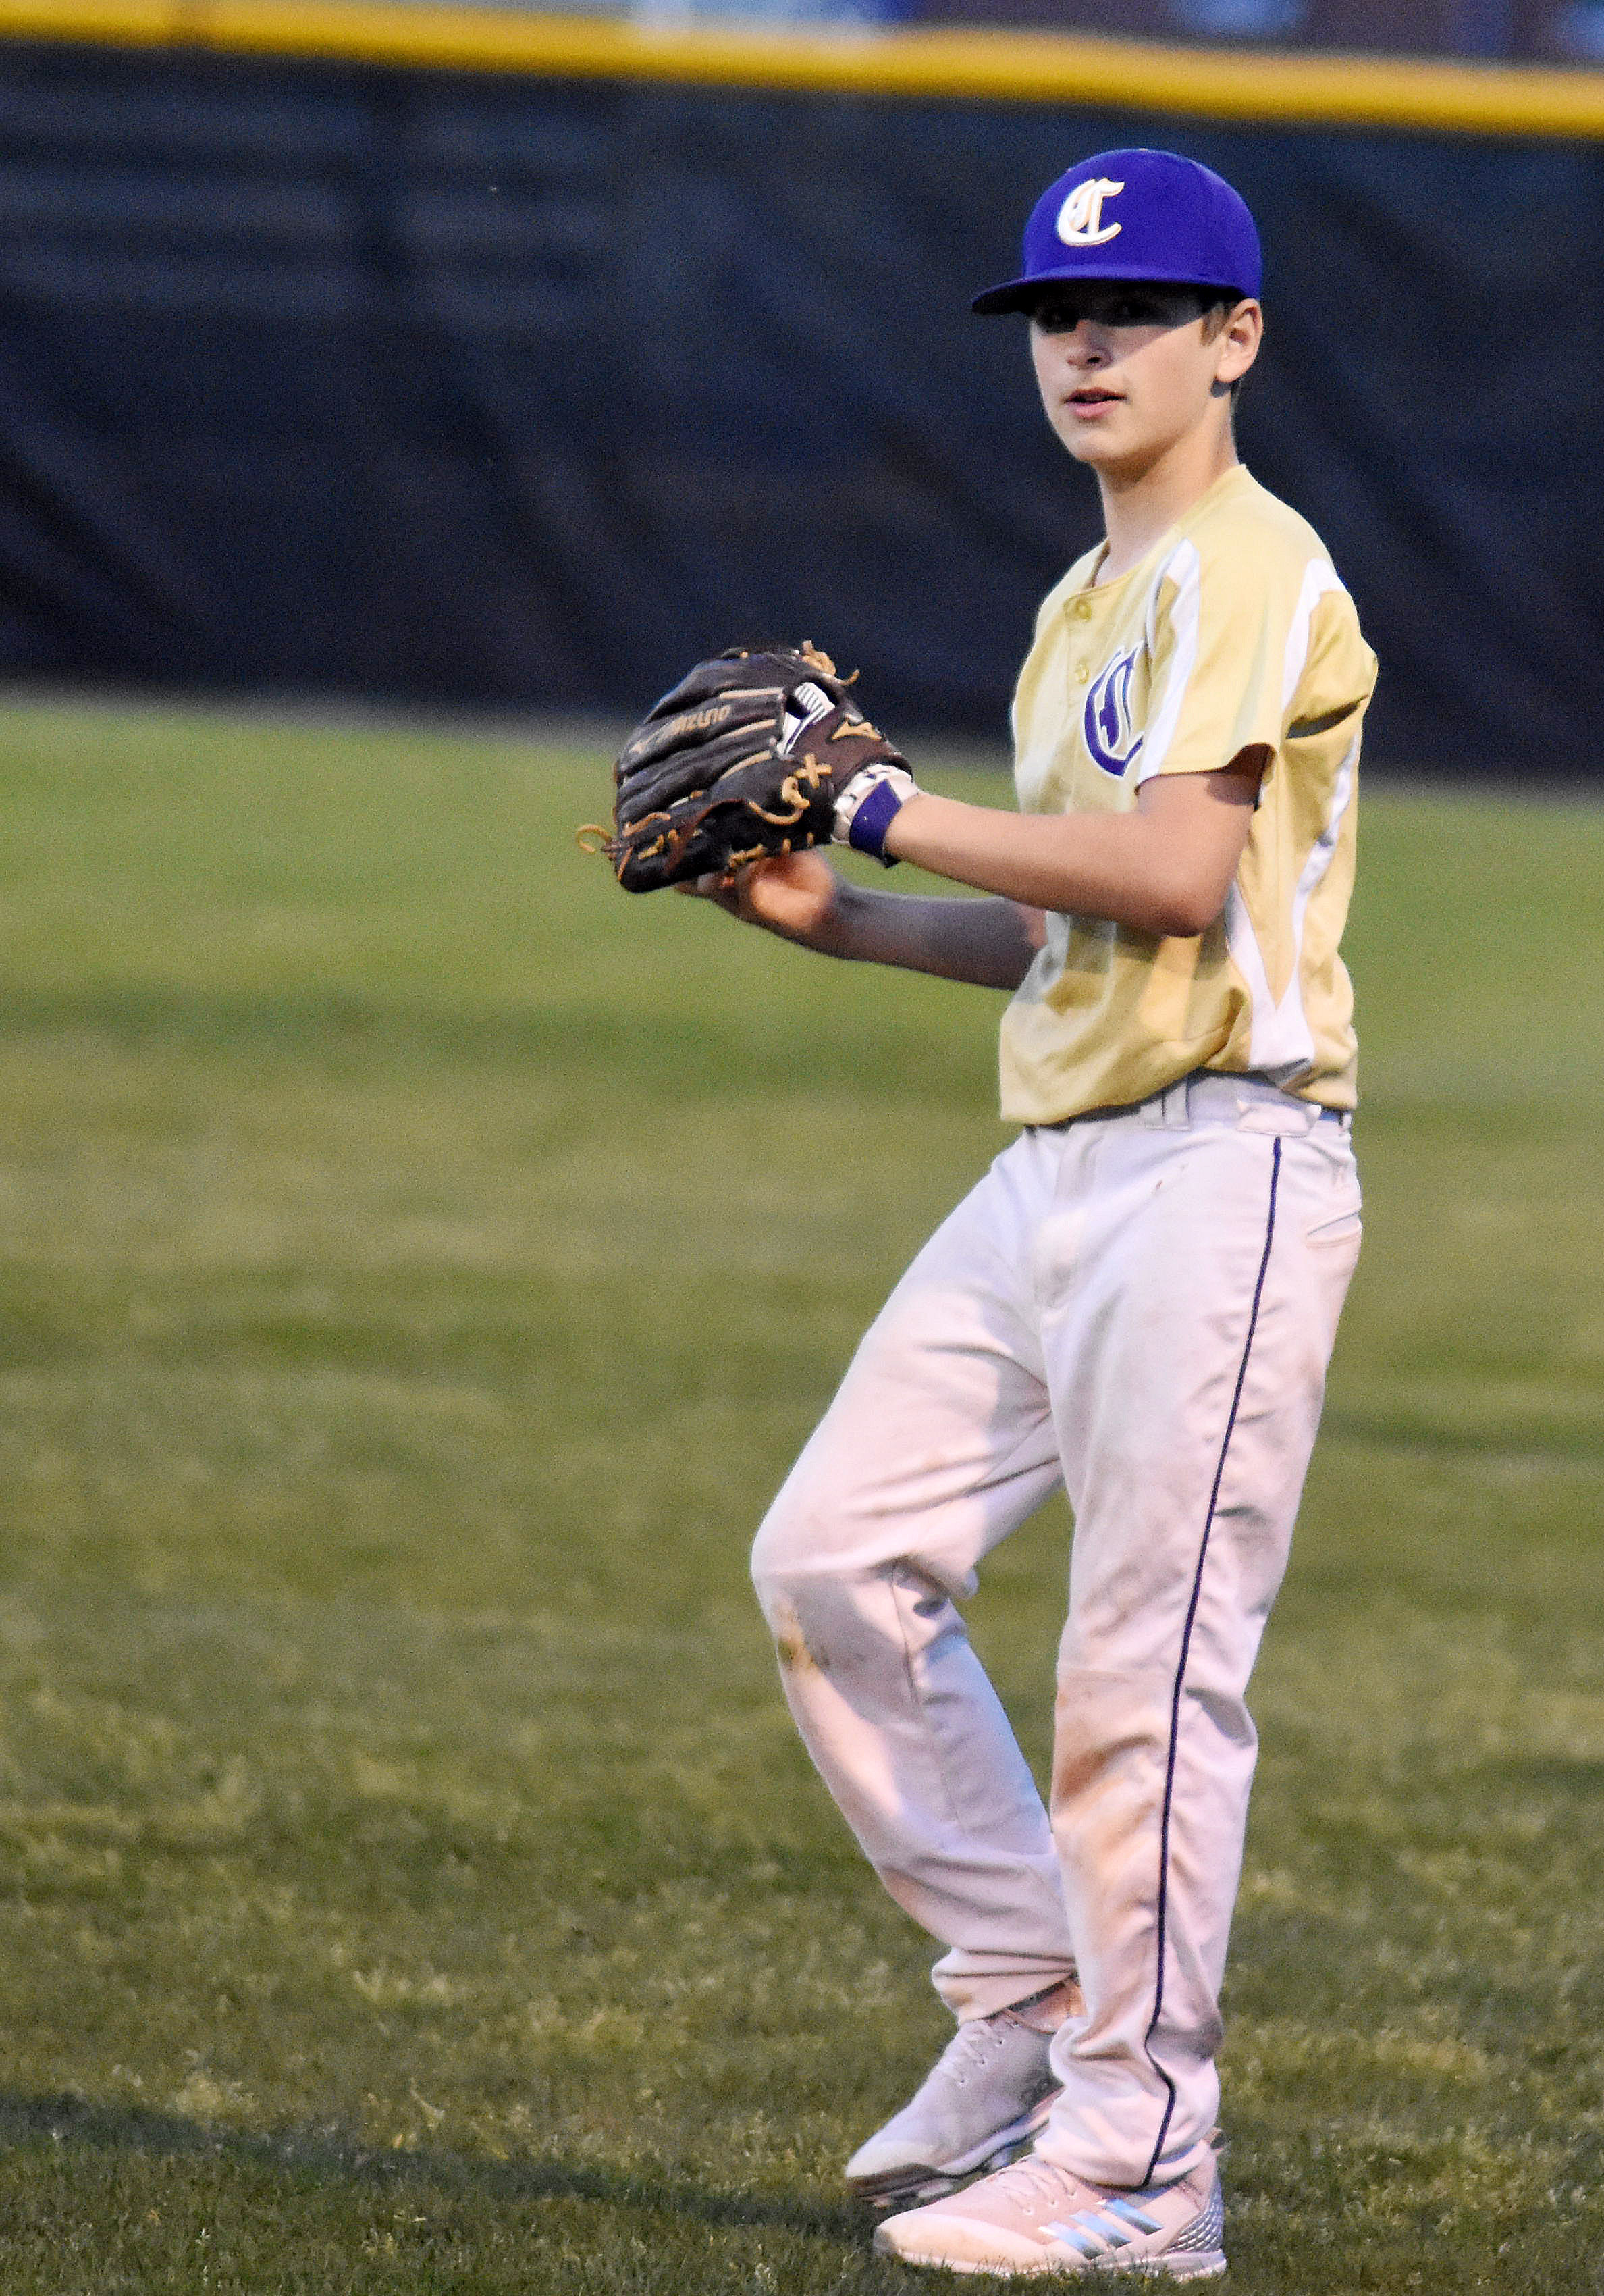 CMS sixth-grader Jaxon Sidebottom throws to first.